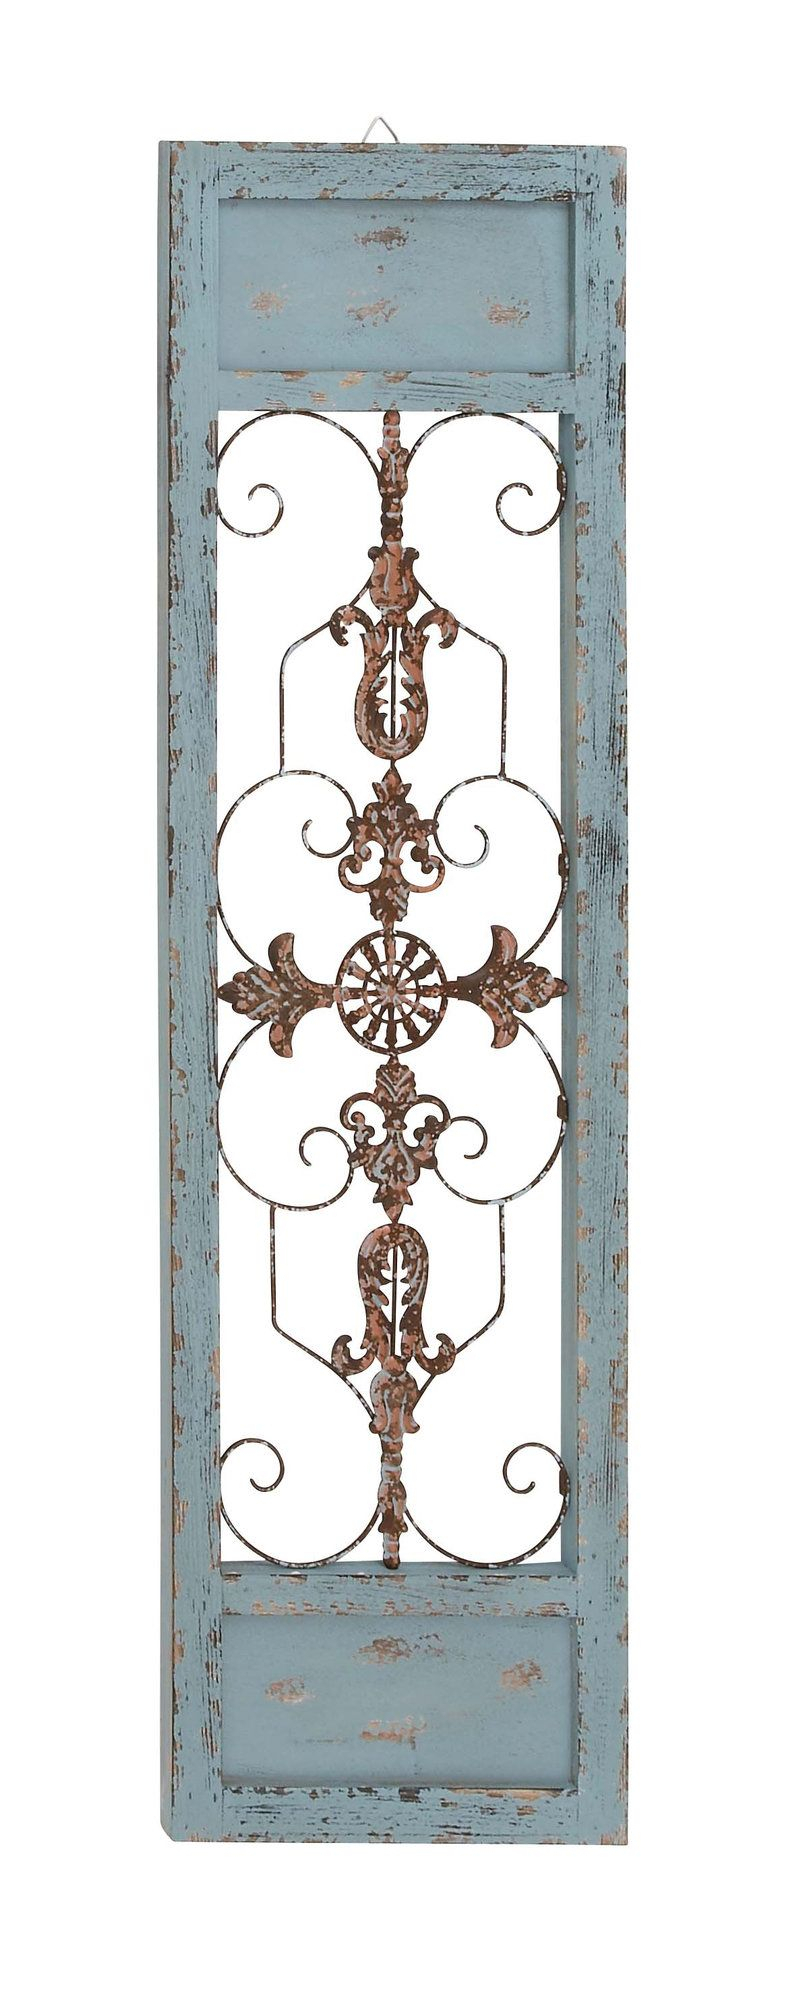 Ornamental Wood And Metal Scroll Wall Décor | Decor | Wooden in Ornamental Wood And Metal Scroll Wall Decor (Image 17 of 30)